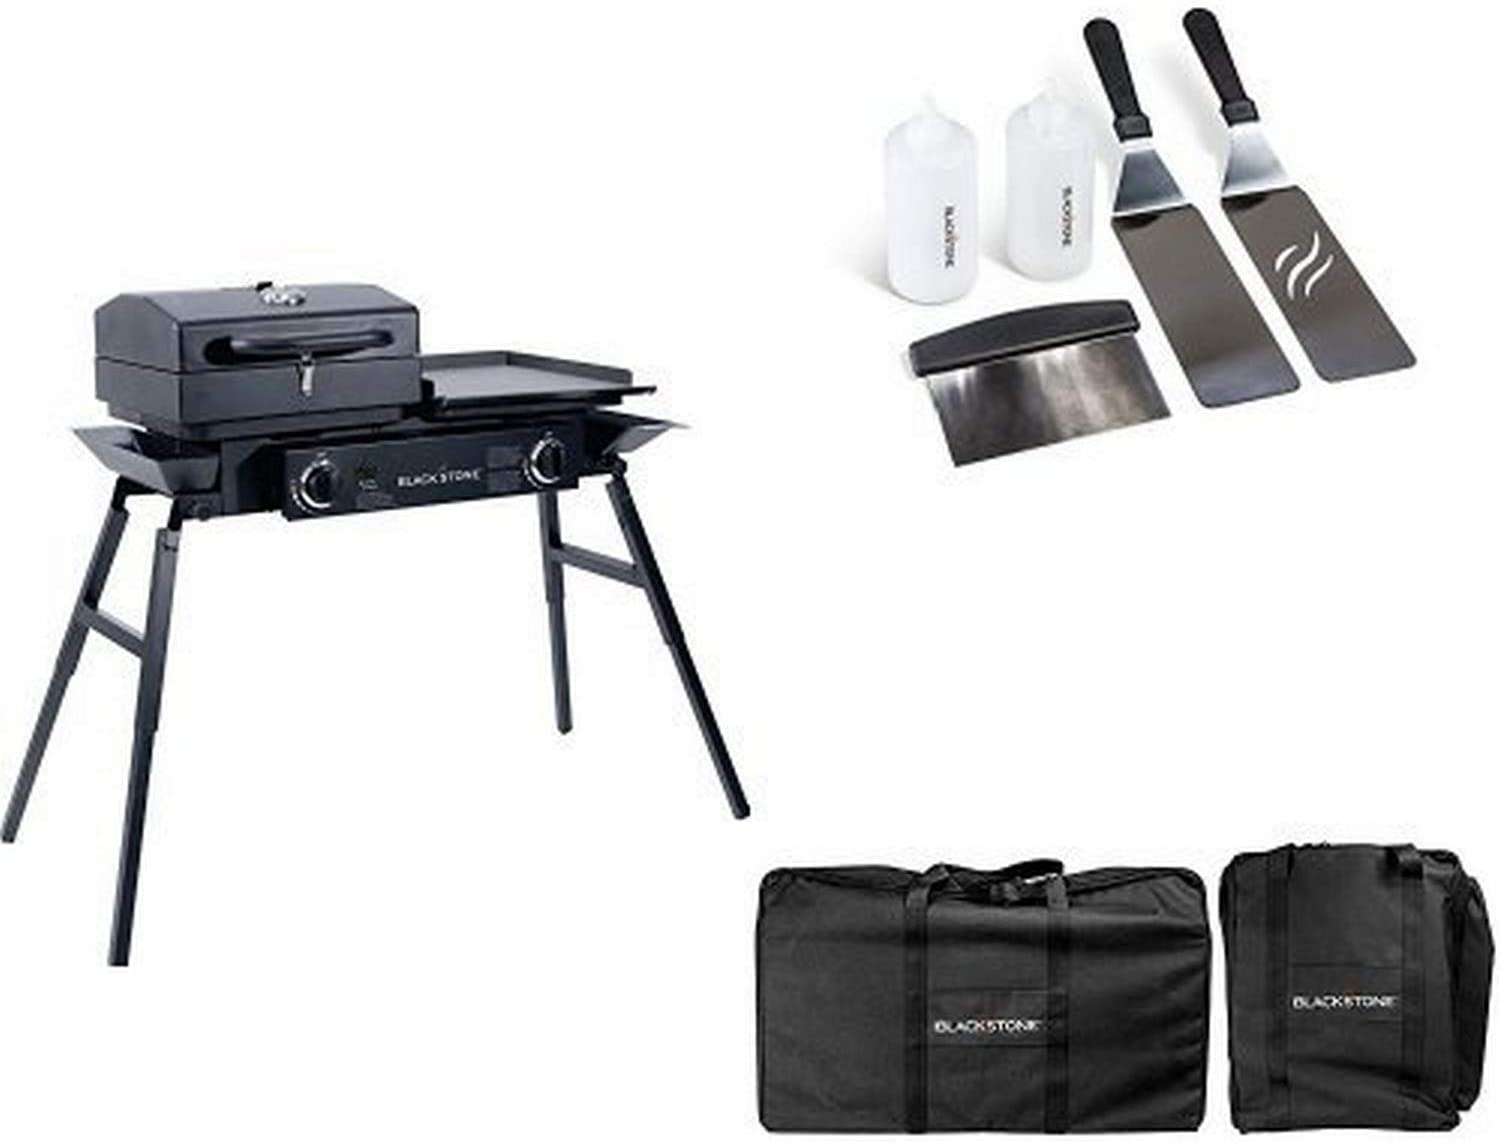 Blackstone Tailgater Portable Gas Grill and Griddle Combo & Cover + Griddle Tool Kit Bundle